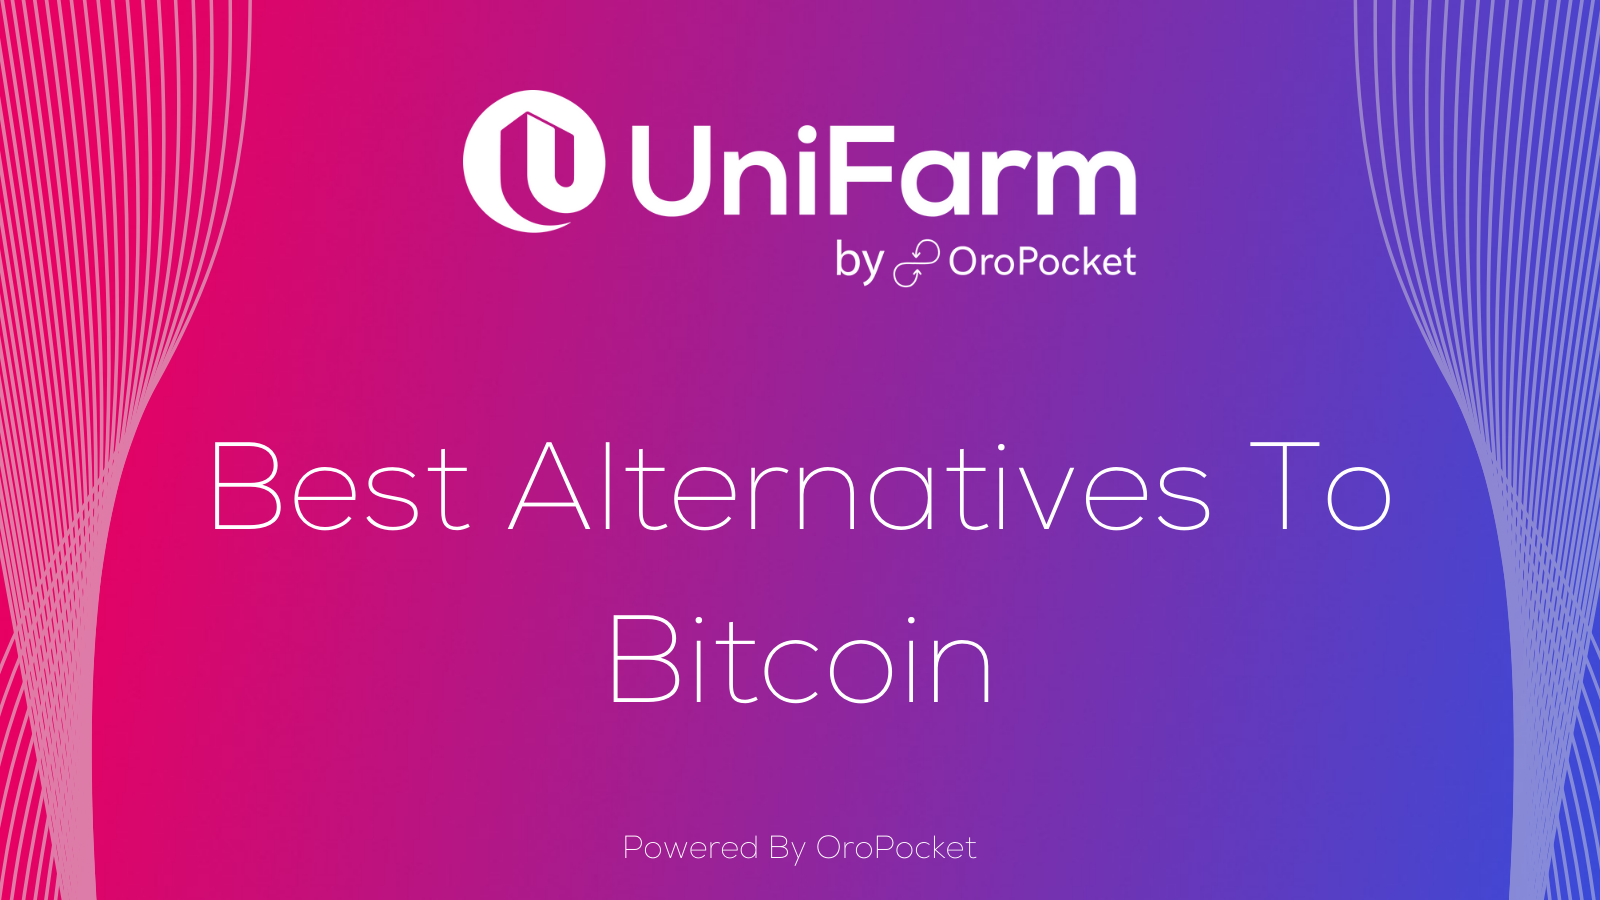 What Are Some Better Alternatives to Bitcoin?